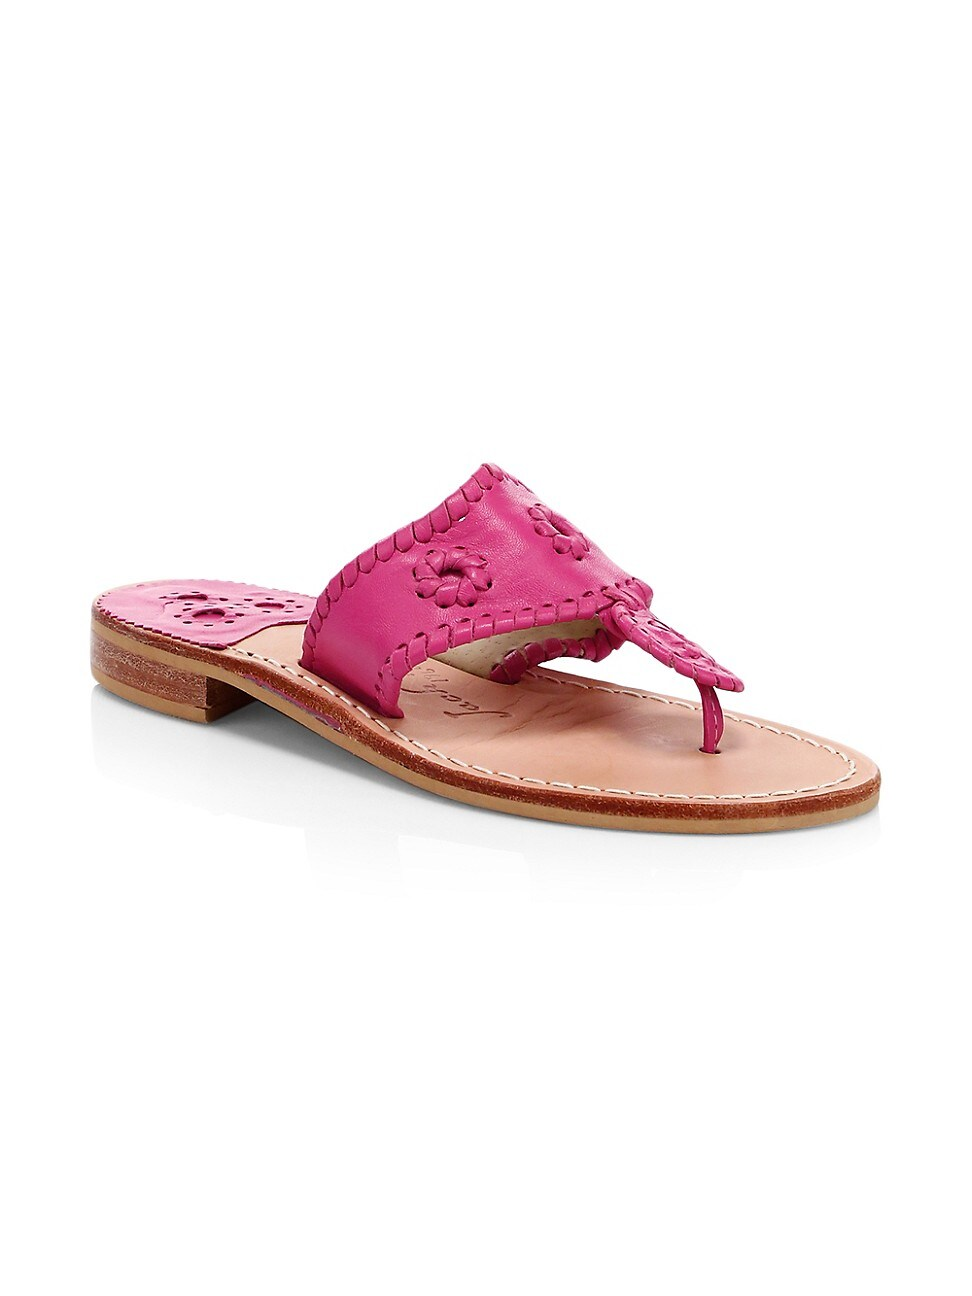 Jack Rogers WOMEN'S JACKS LEATHER THONG SANDALS